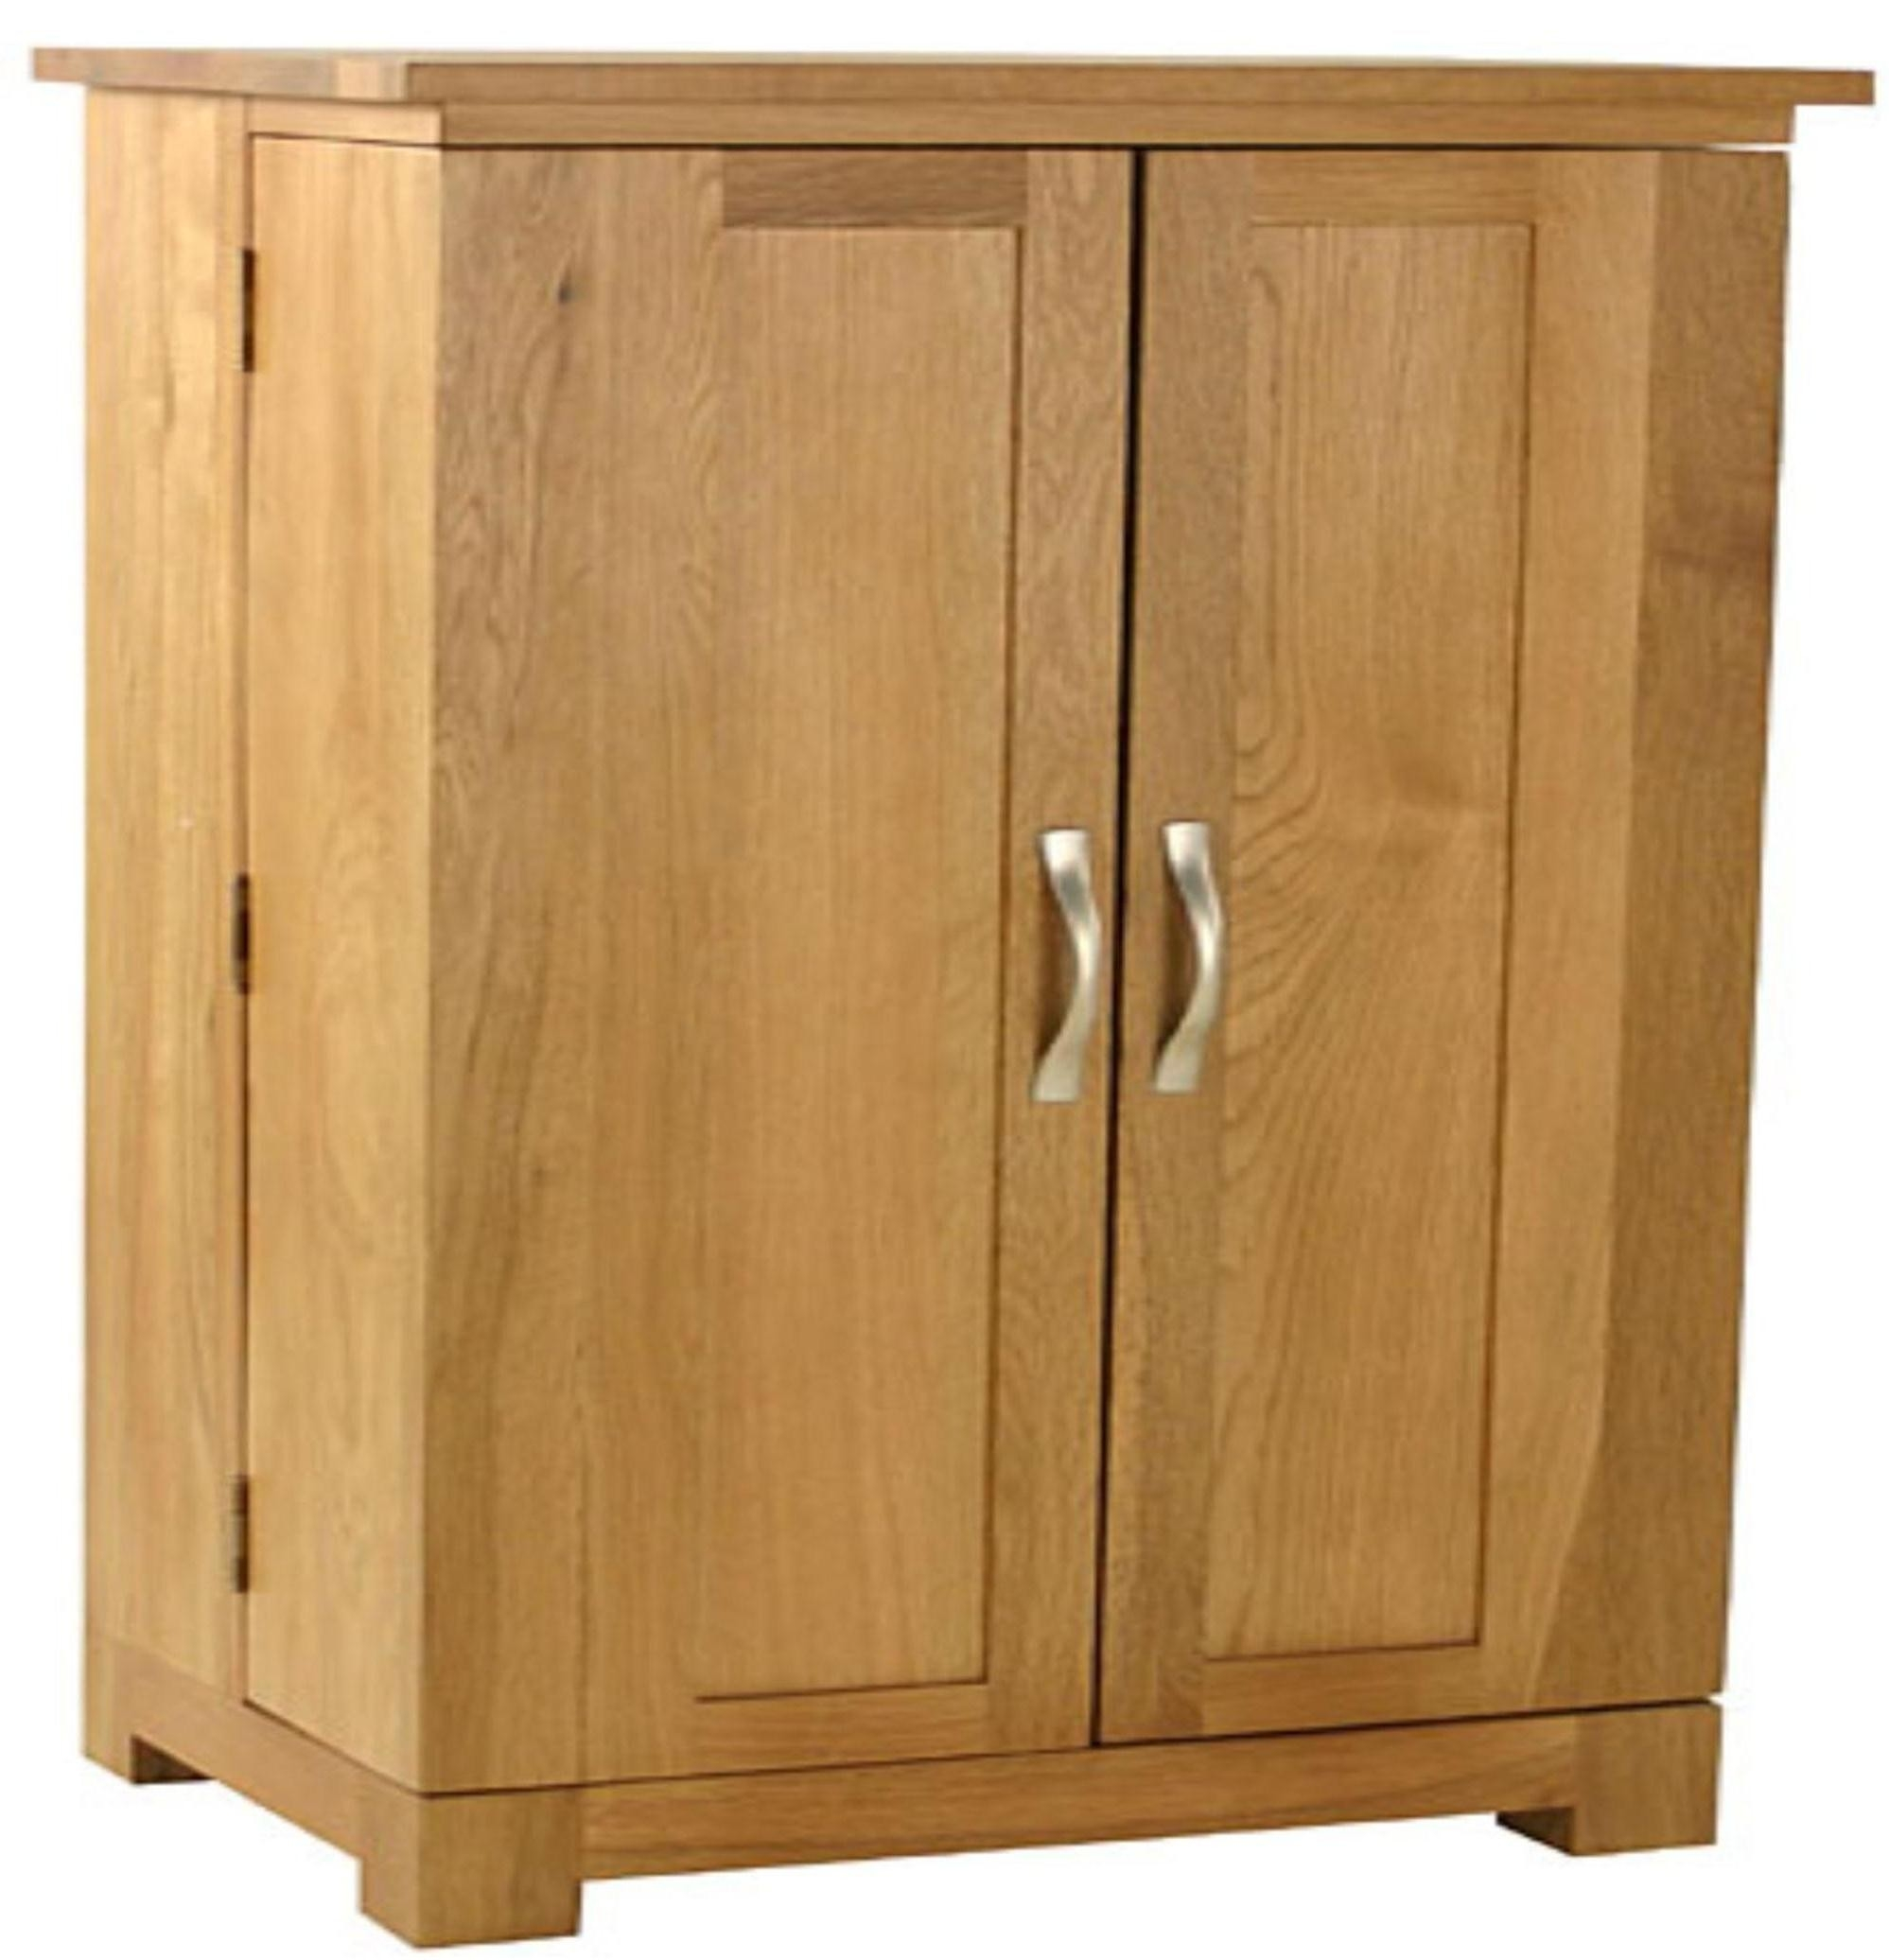 Small Wooden Storage Cabinets With Doors